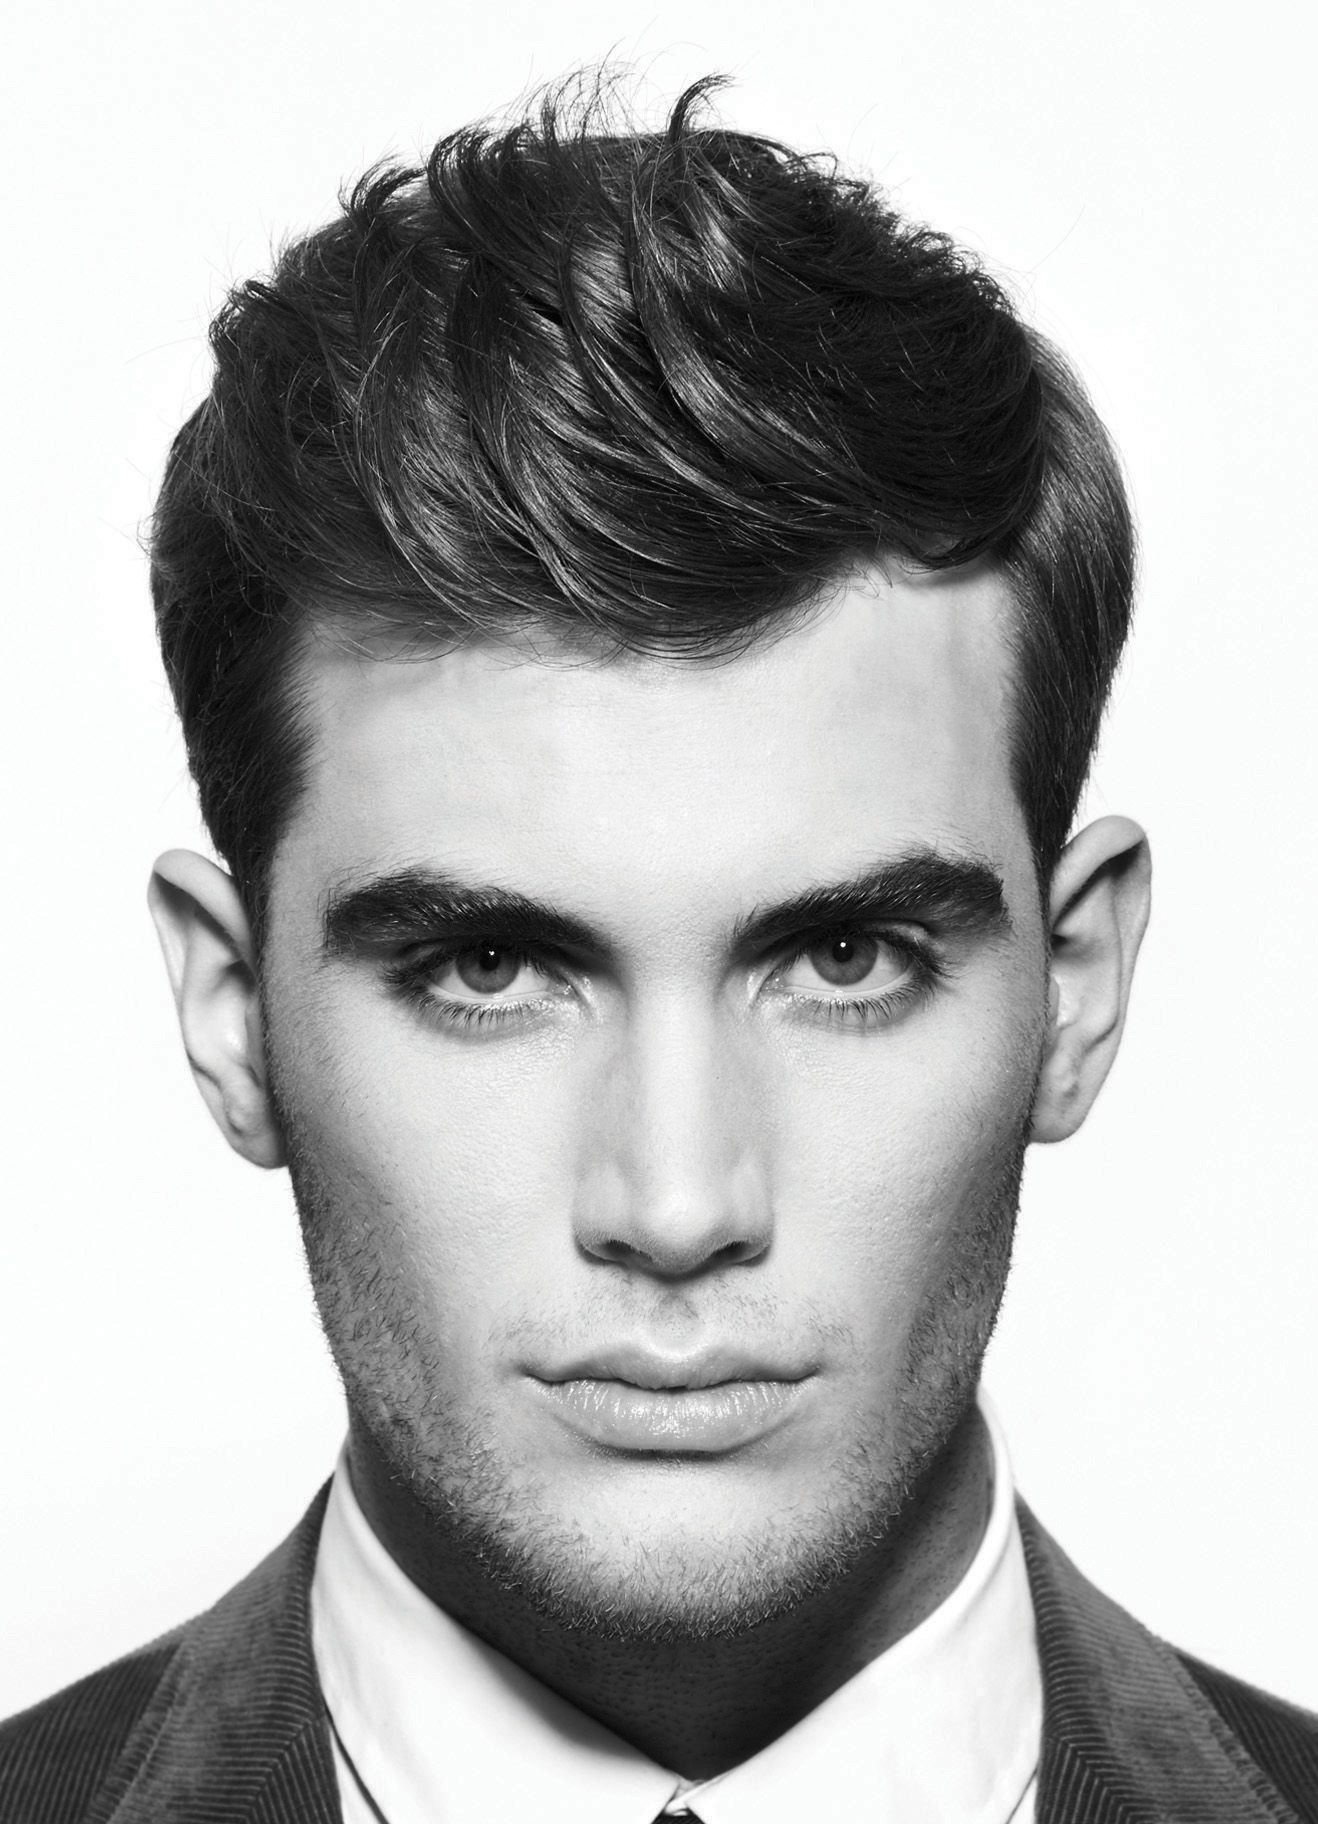 men's hairstyles | hairstyles trends for men | pinterest